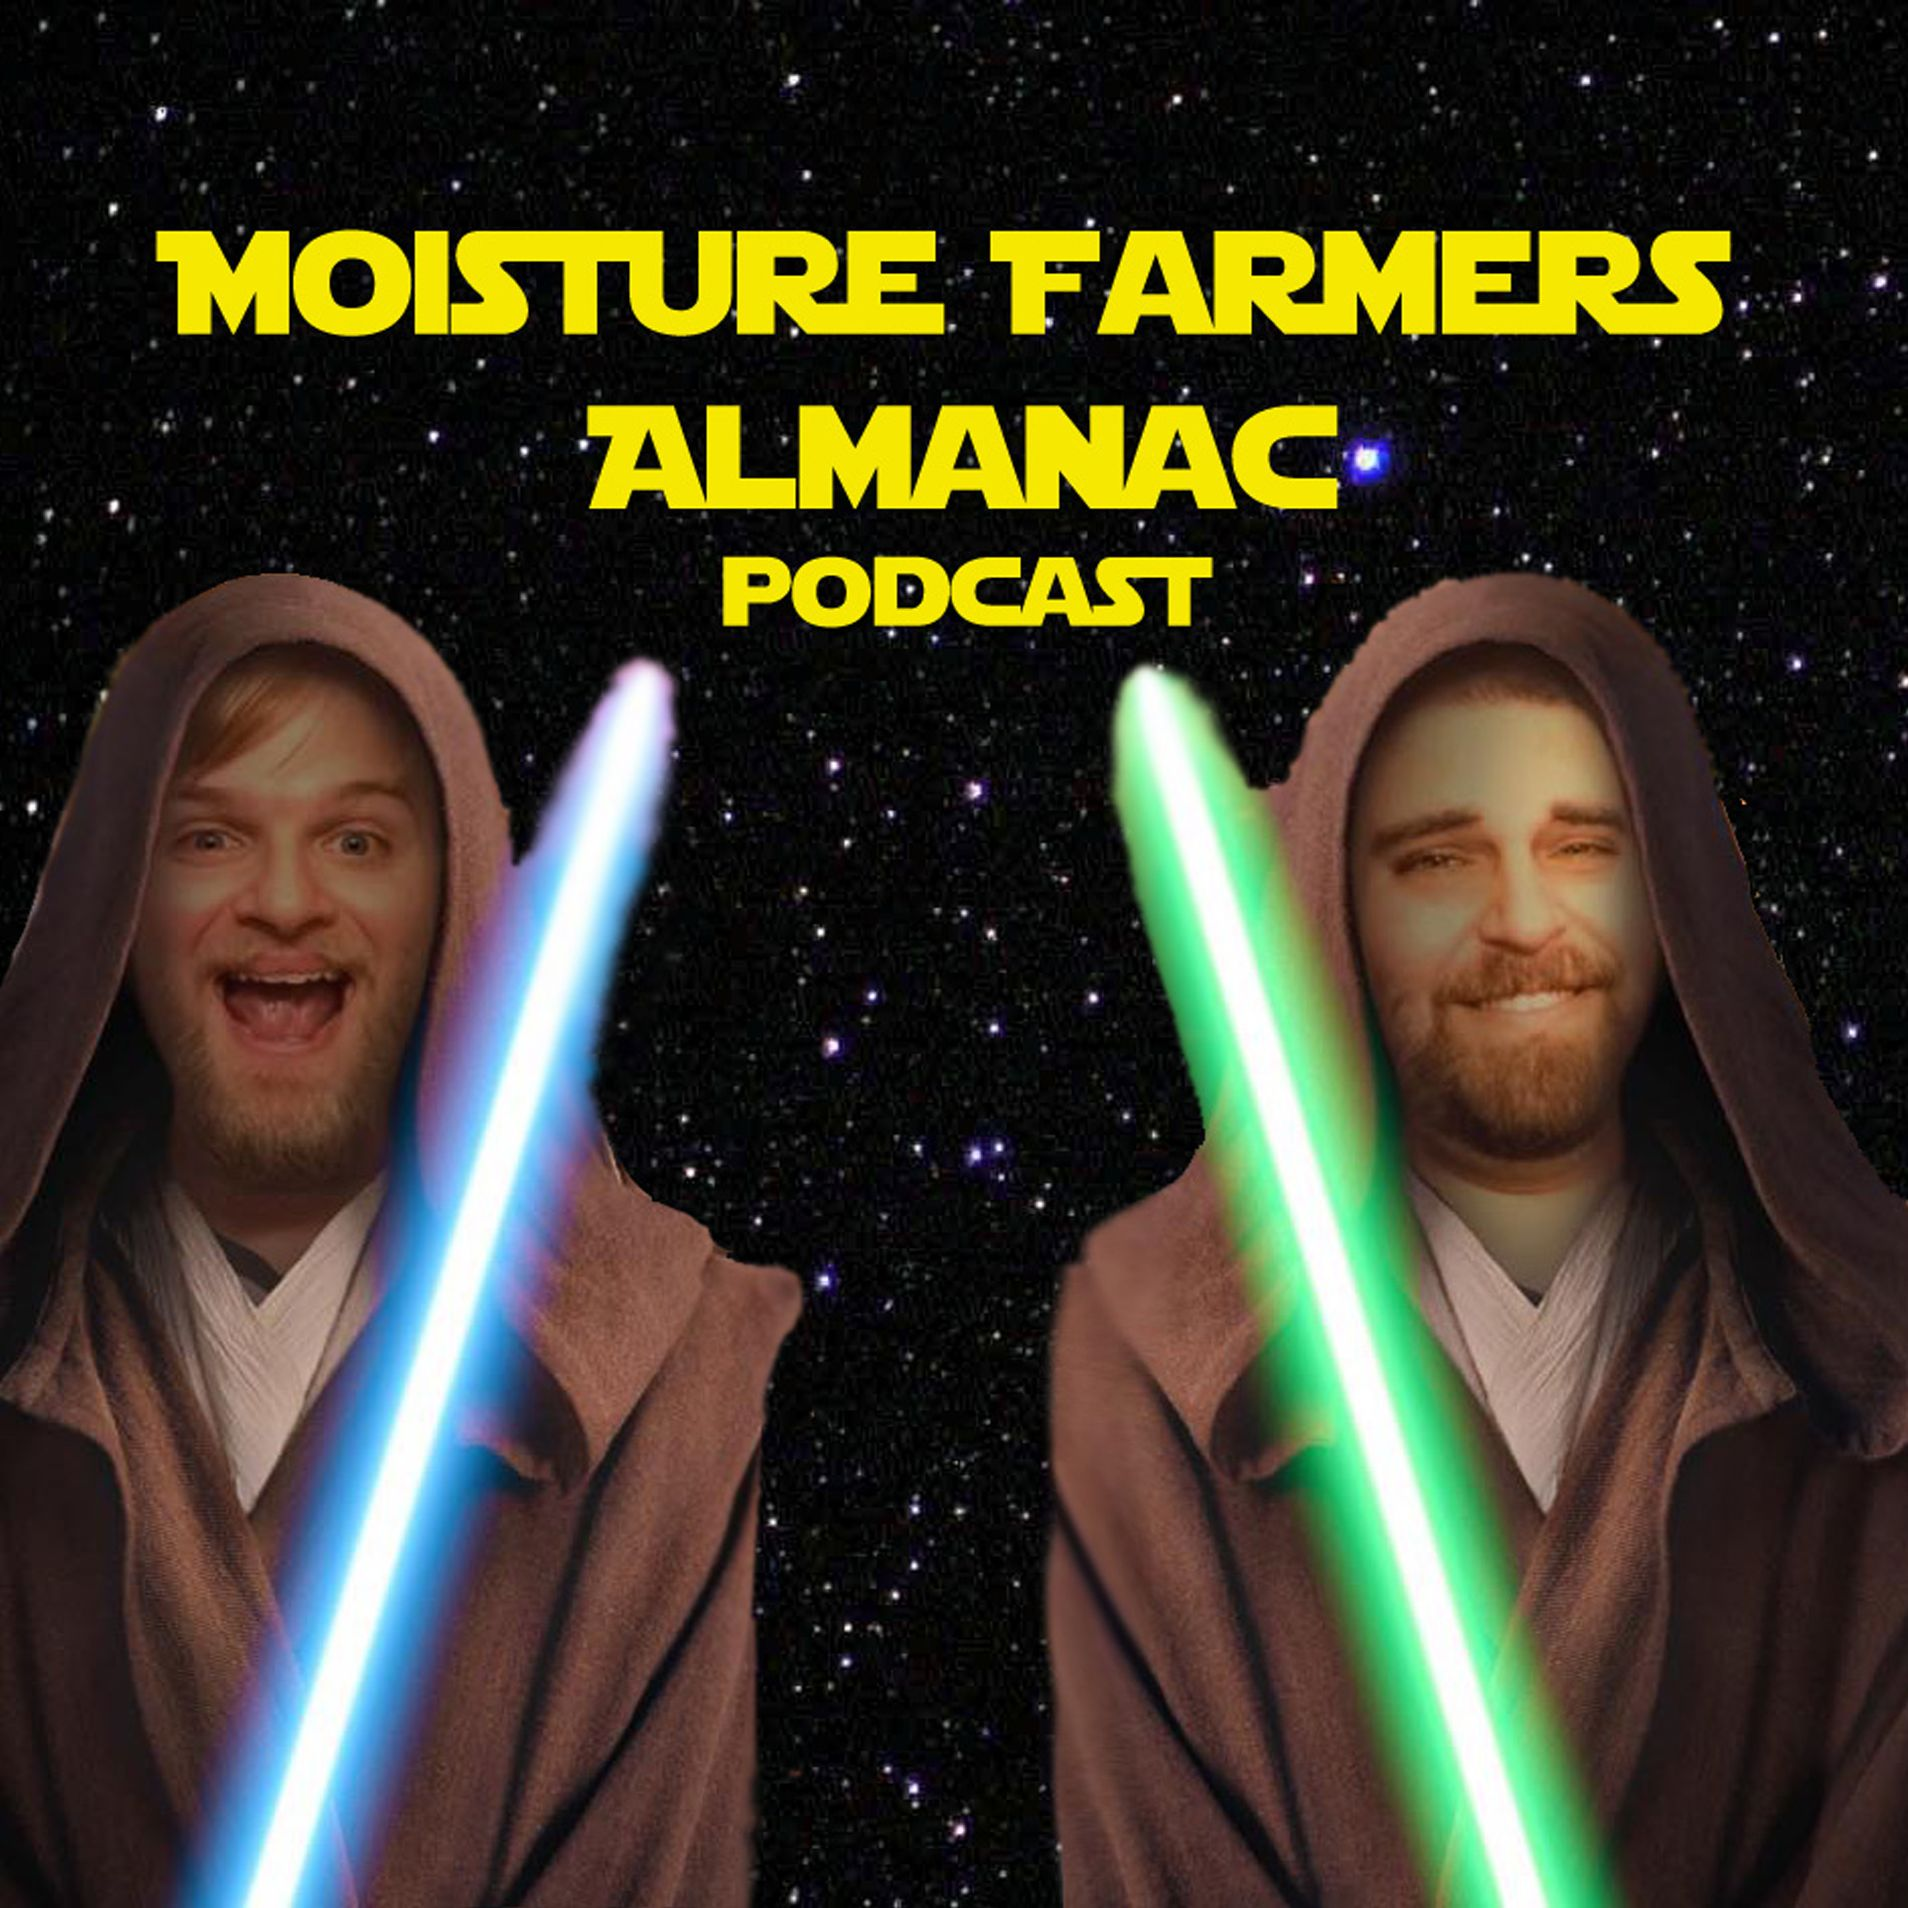 Moisture Farmers Almanac: A Star Wars Podcast